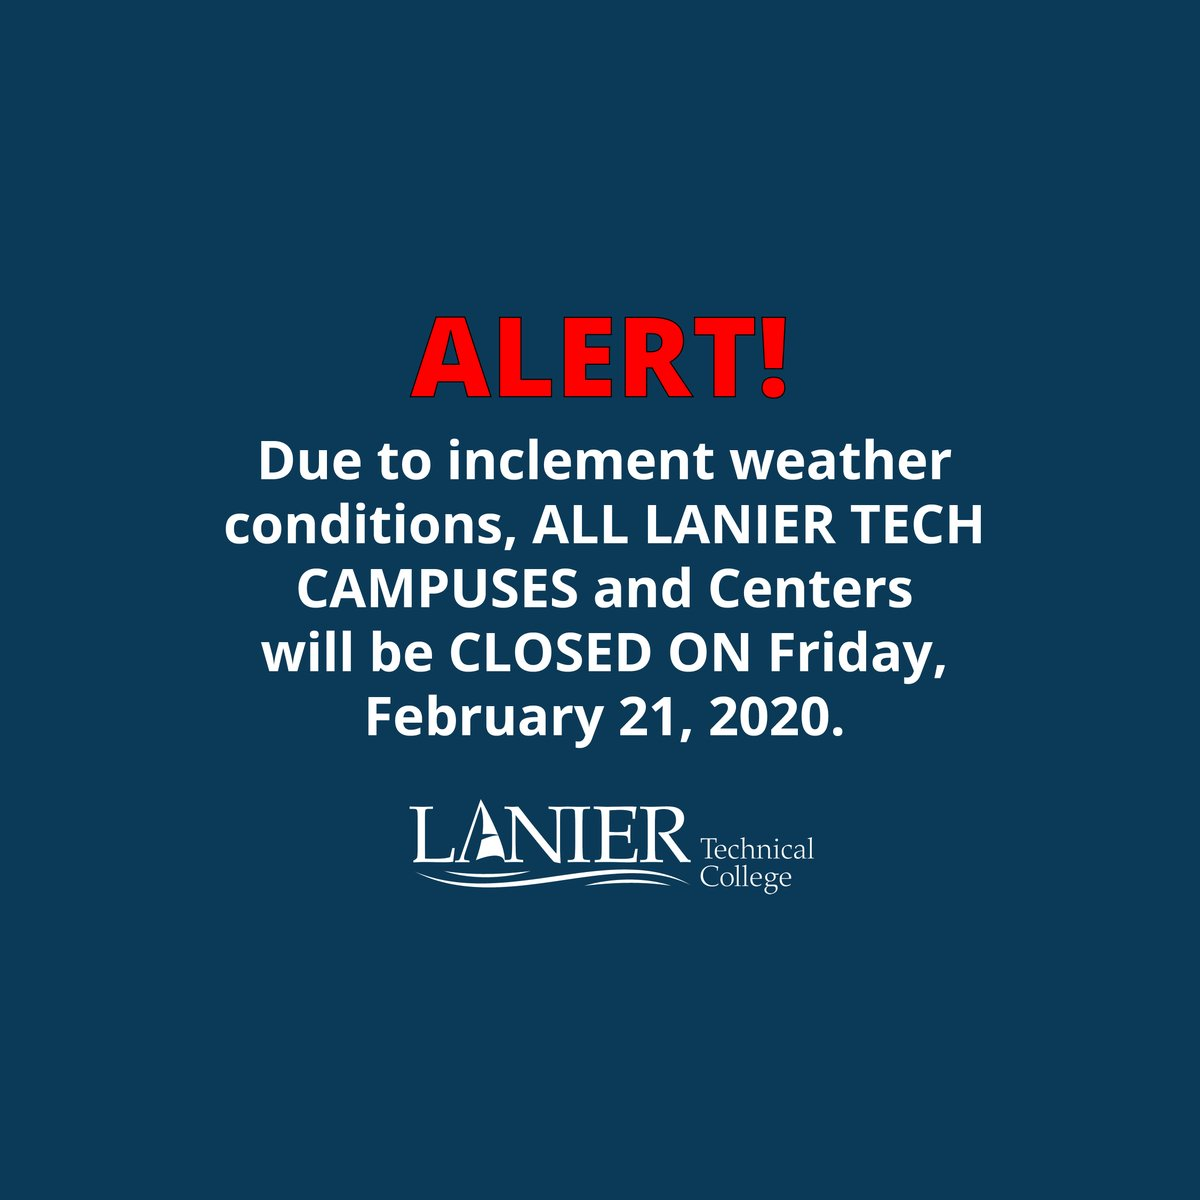 ALERT! Due to possibly unsafe travel conditions, Lanier Technical College will be closed on Friday, February 21, 2020. We will resume normal operations on Monday, February 24, 2020.  Be safe everyone.  #tcsg #WEARELaniertecg #greatcareersbeginherepic.twitter.com/mvTbbu0Zim